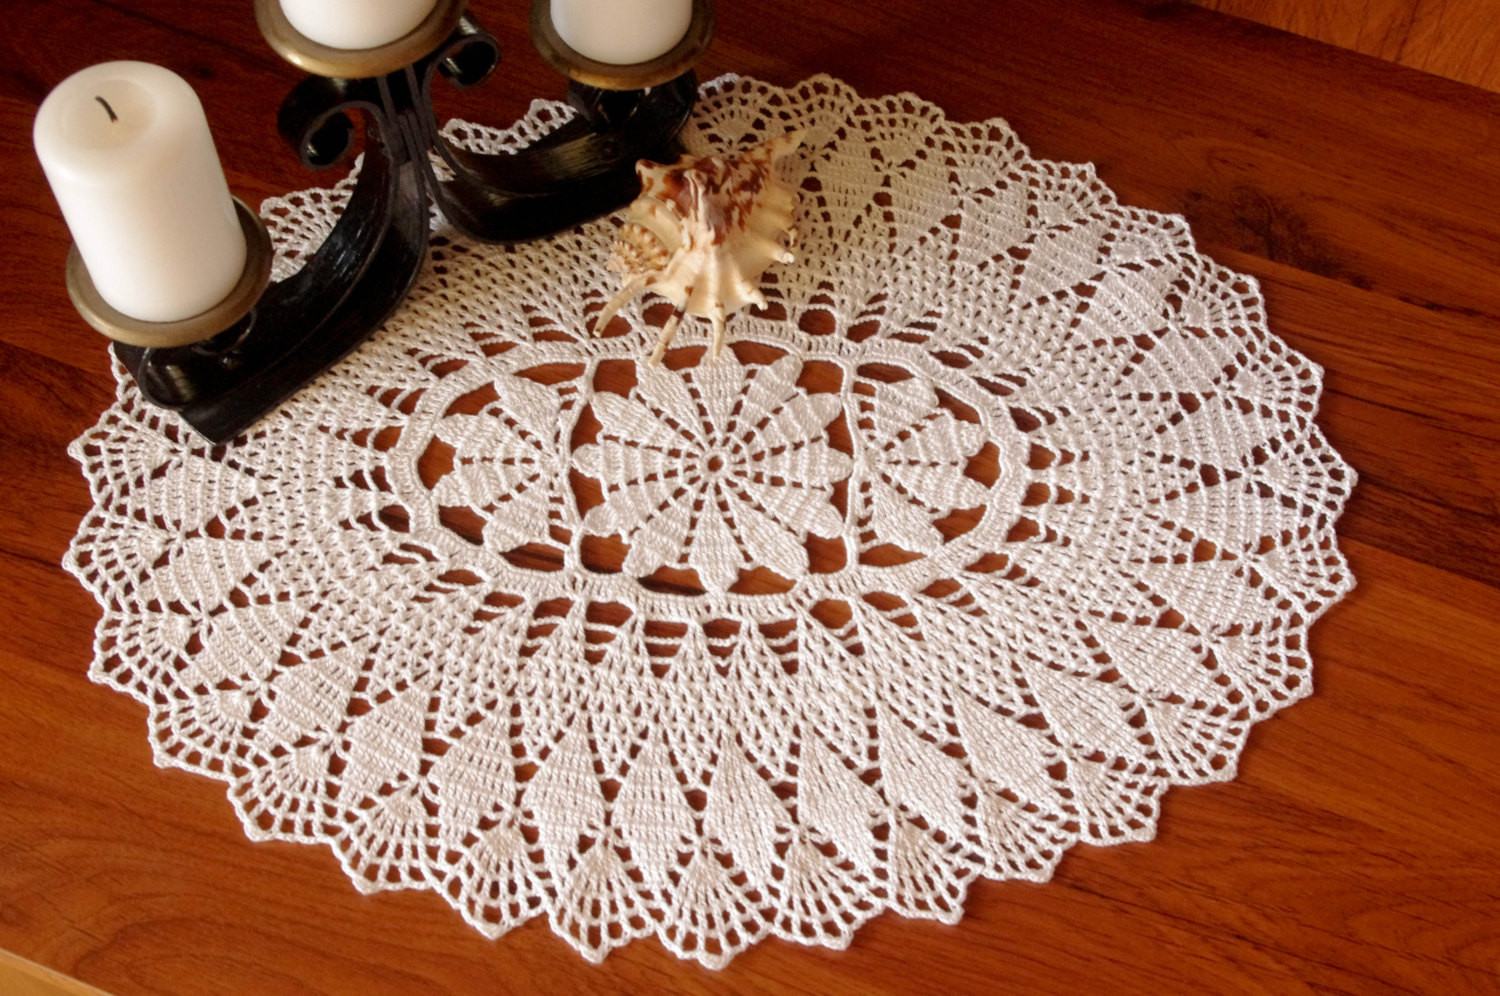 Crochet Runner Best Of Crochet Table Runner White Runner Oval Crochet Doily Of Fresh 45 Ideas Crochet Runner